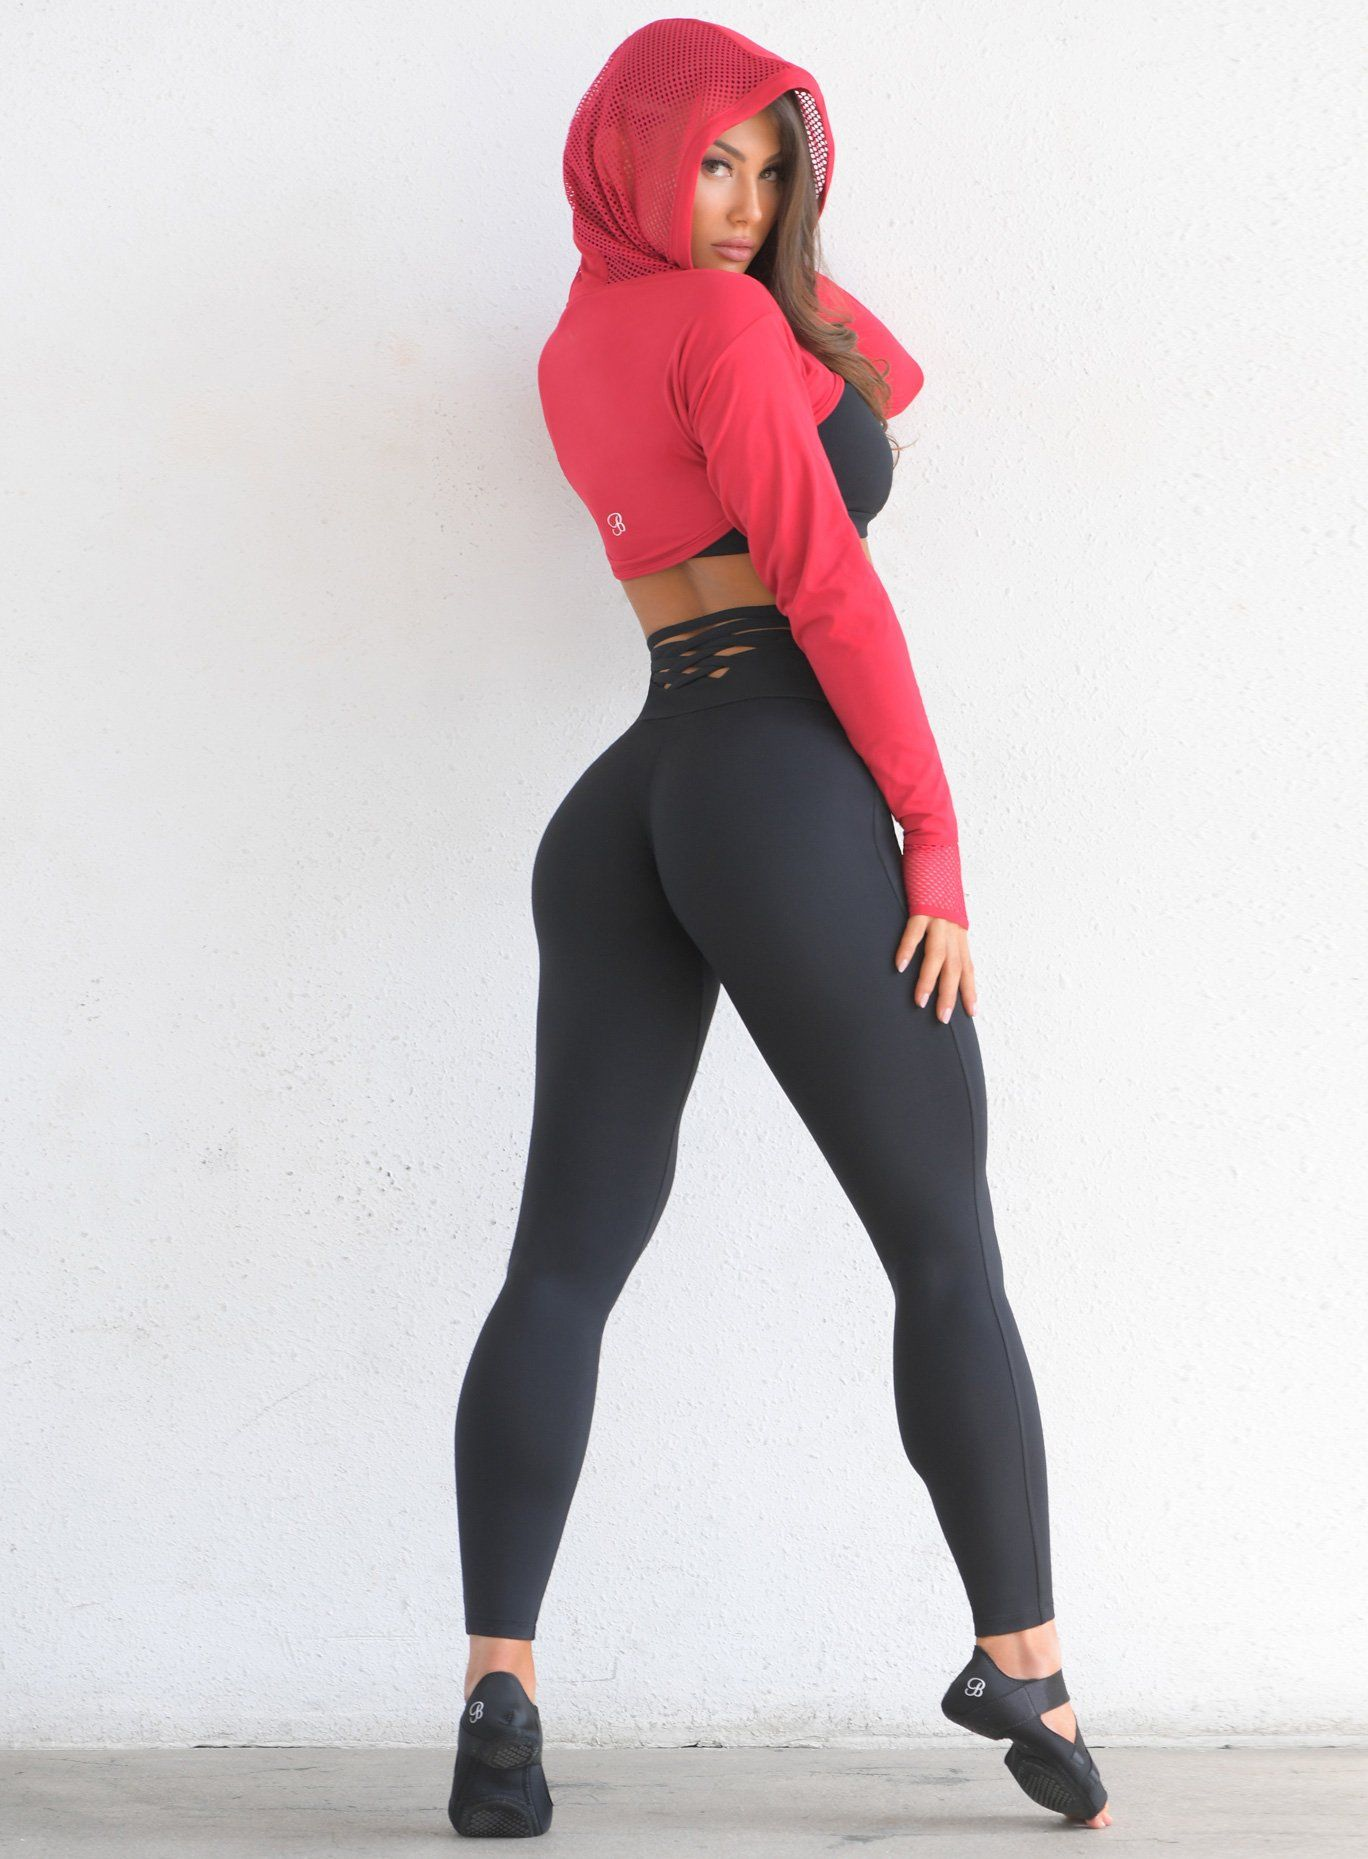 c2a9c0f923640b Sexy Back Leggings in 2019 | Hot yoga pants | Sexy, Black leggings ...